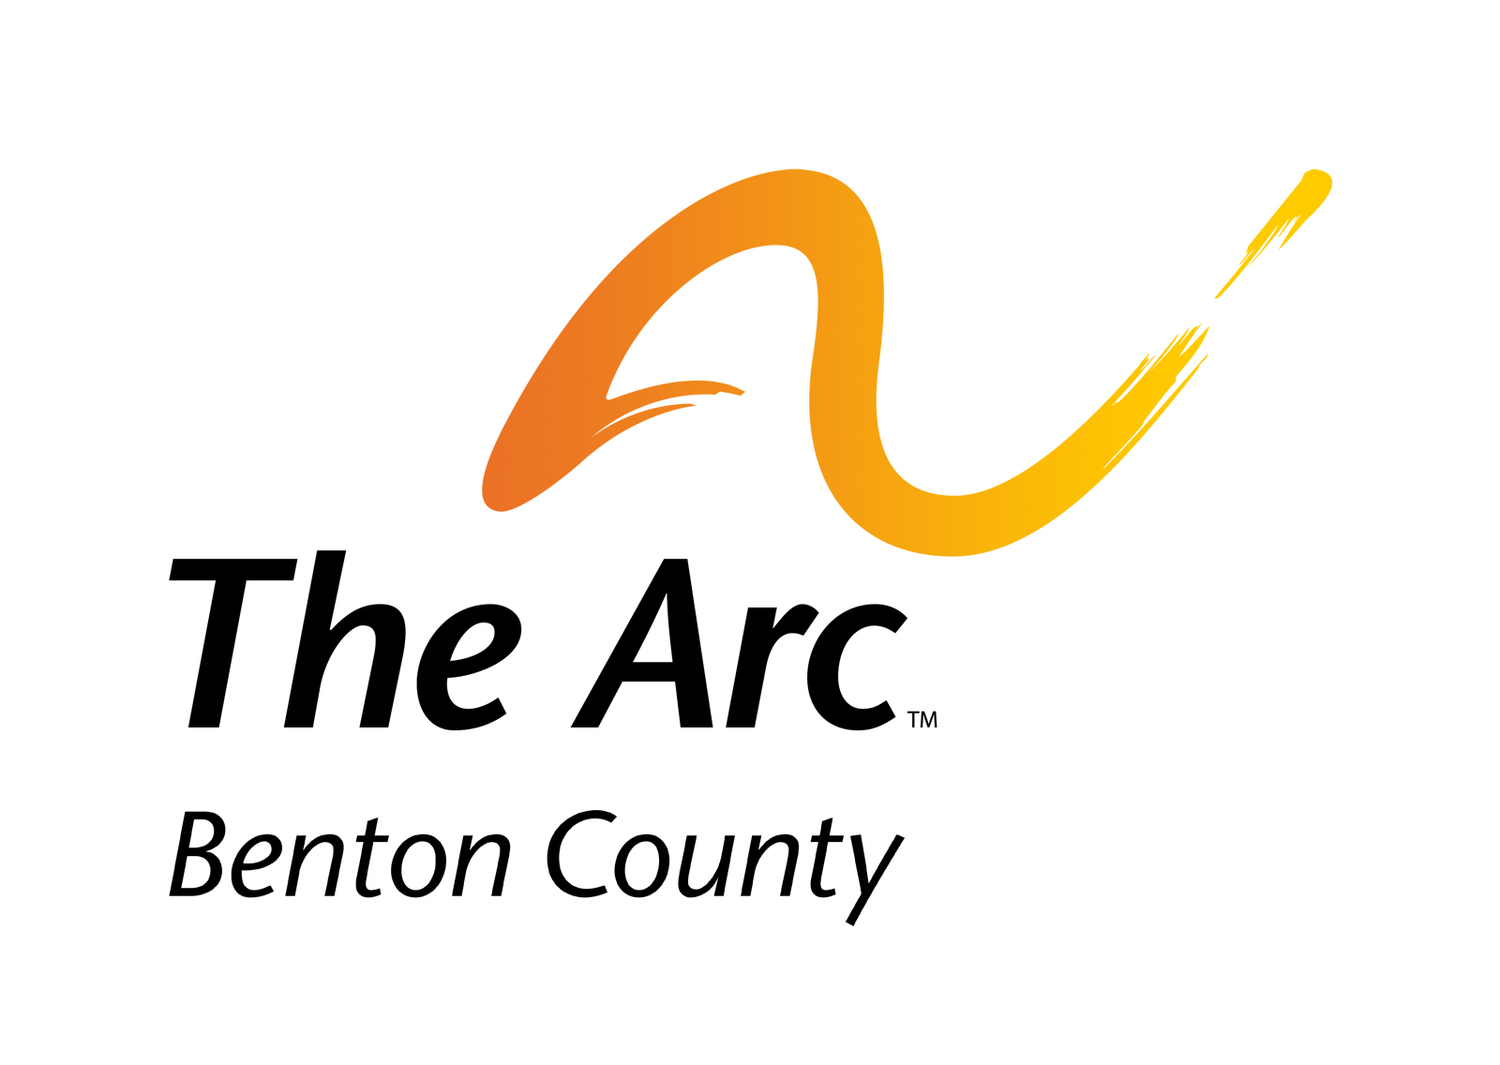 The Arc Benton